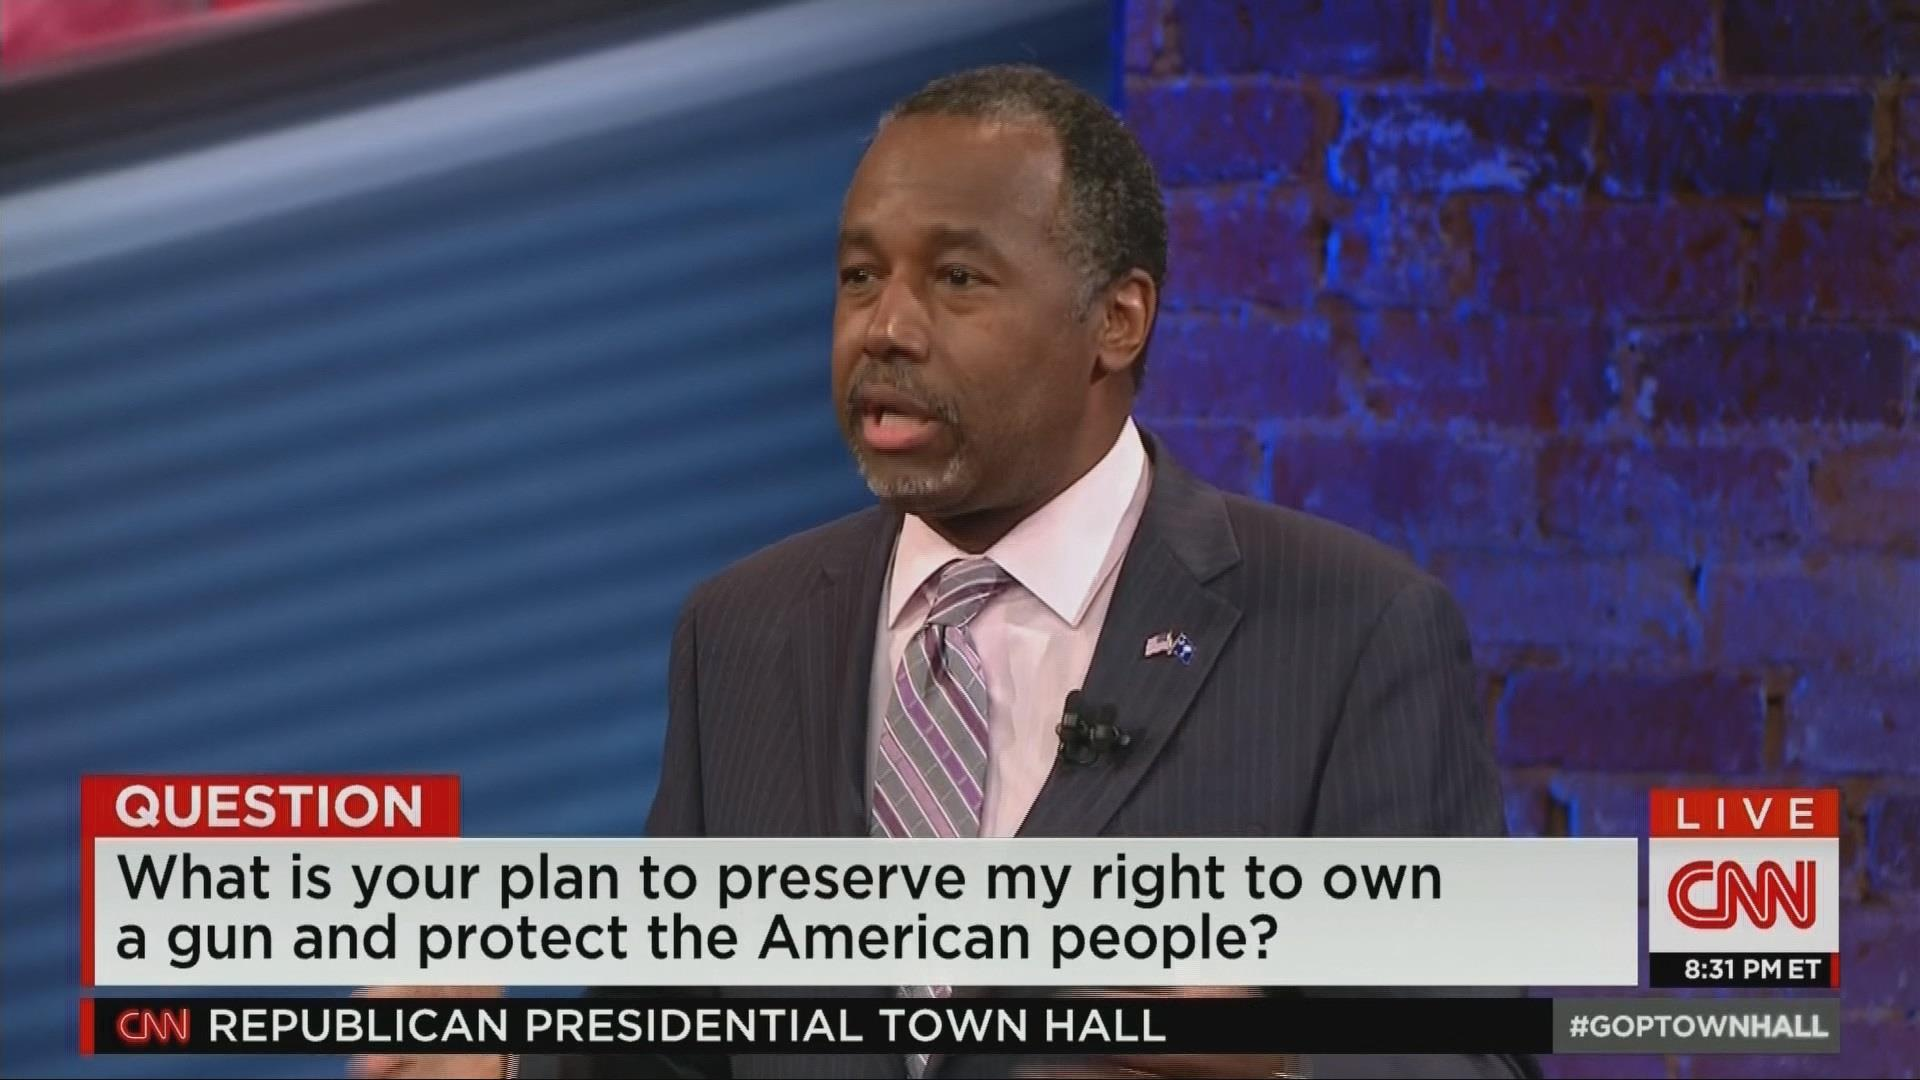 Carson: Makes no sense to take guns away